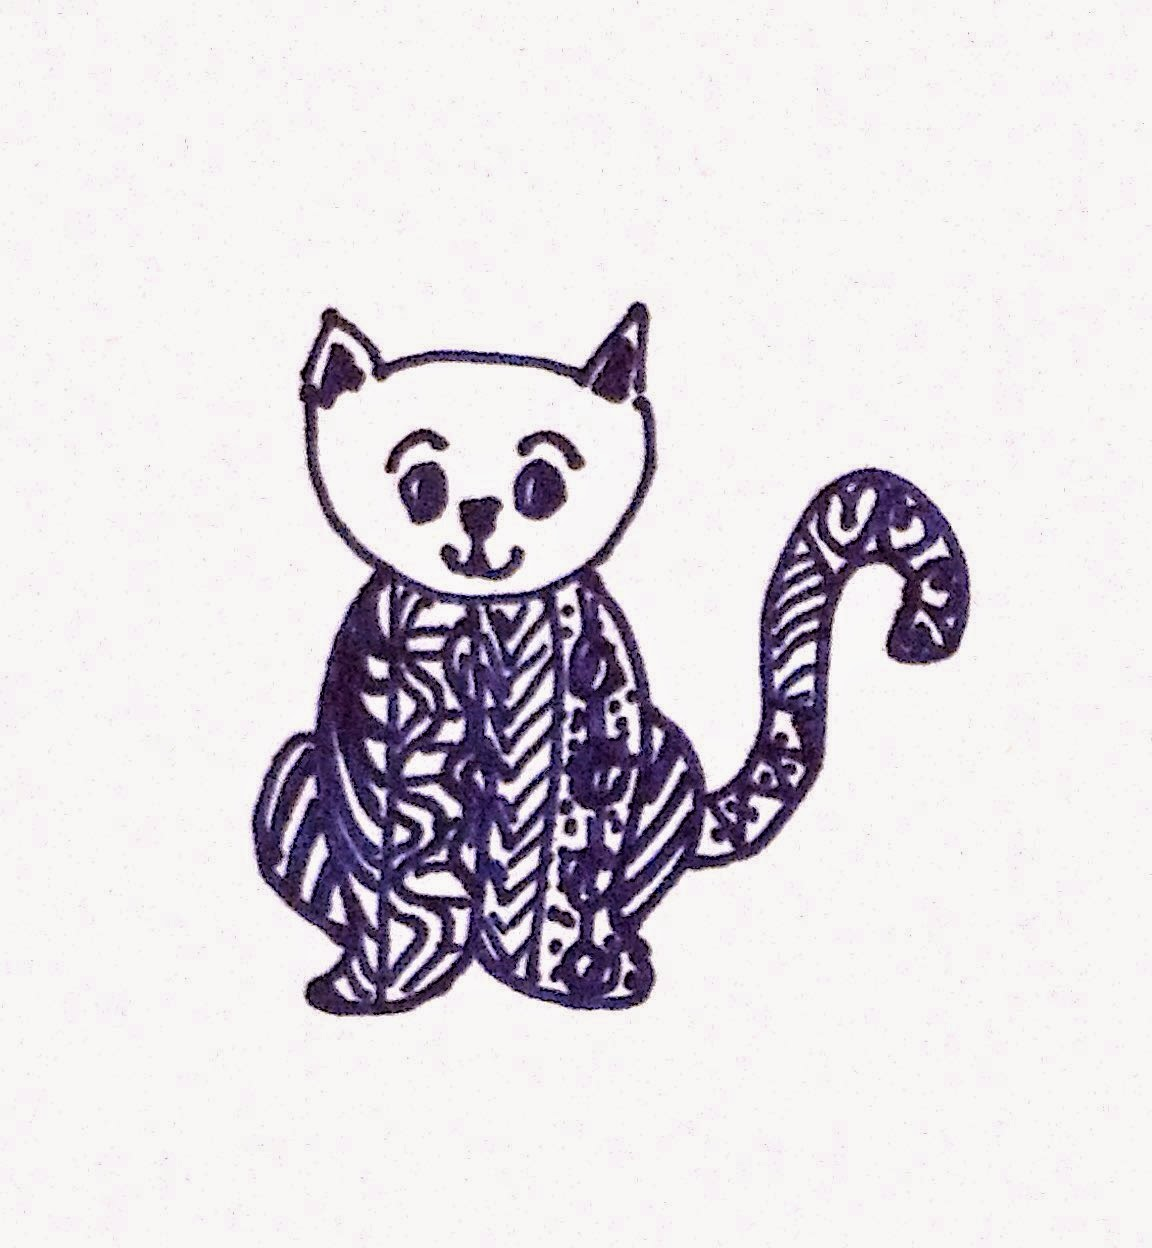 Zentangle Inspired Cat